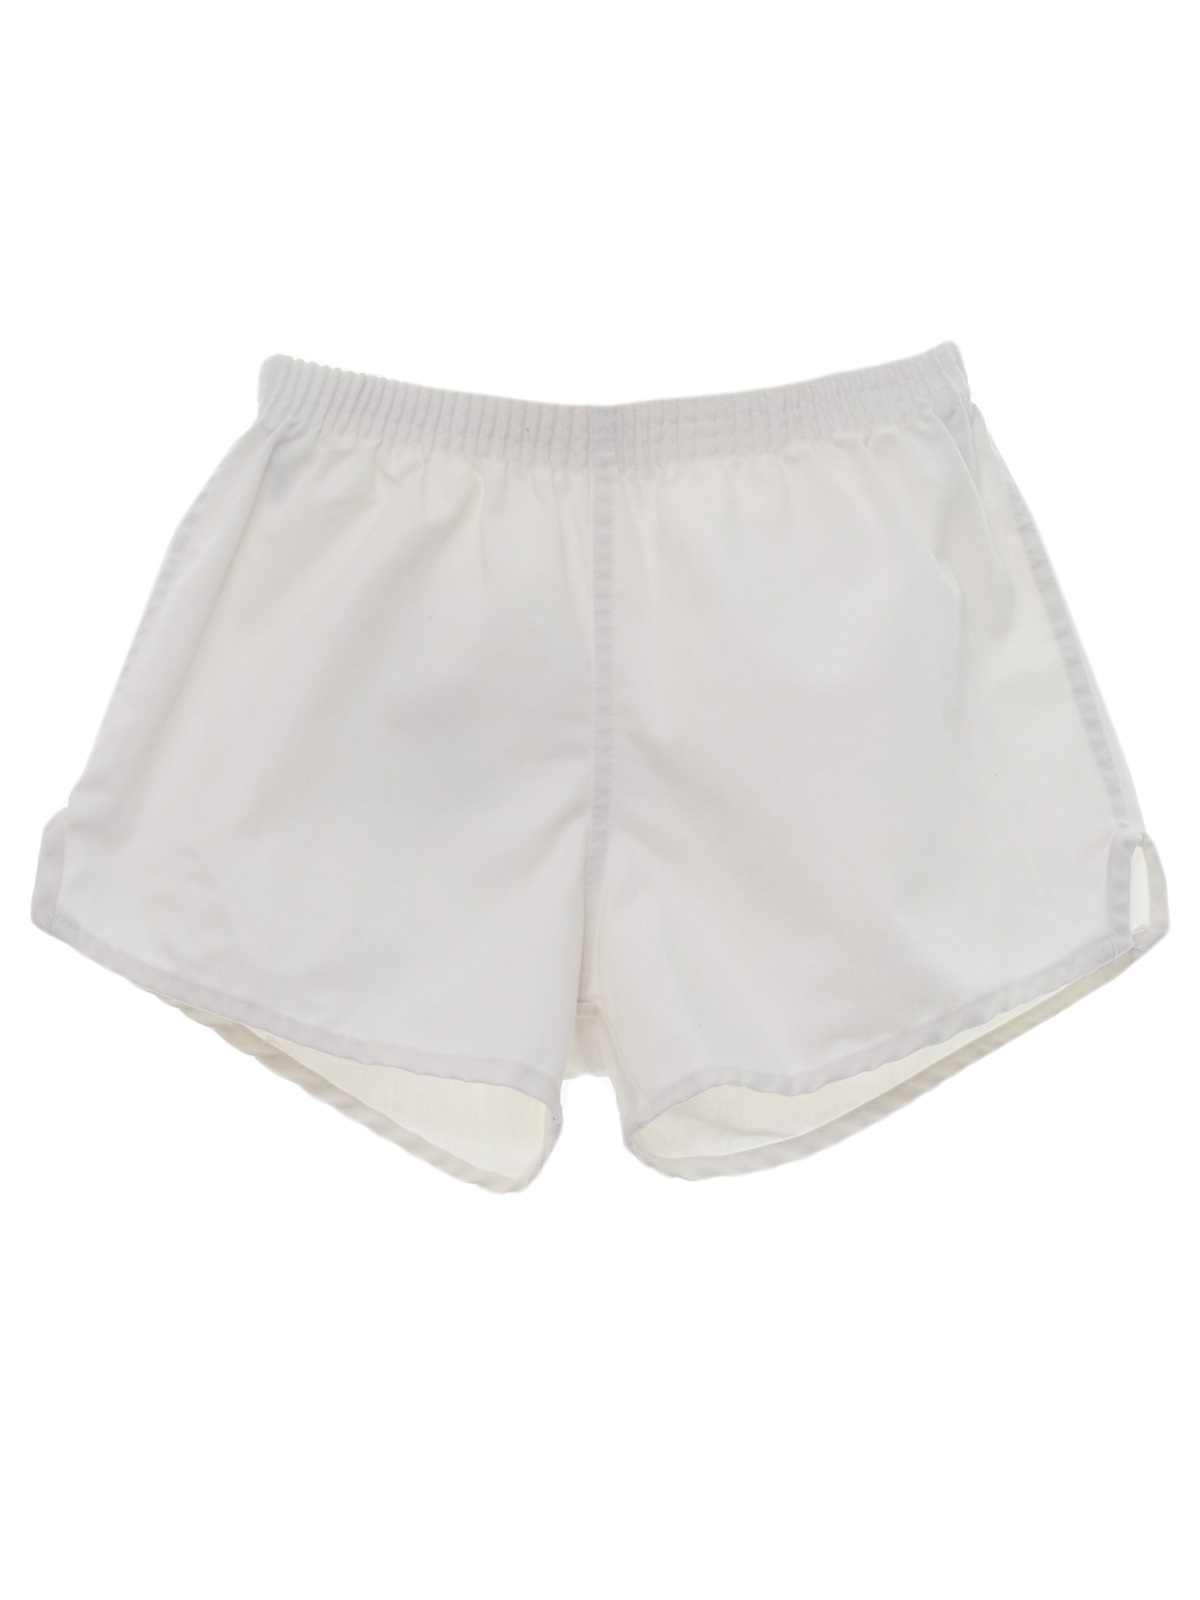 men's athletic shorts When it comes to training and staying active, Nike men's athletic shorts provide the comfort you need to excel in any activity. Shop men's workout shorts for staying cool and wicking away sweat when the weather gets warm.